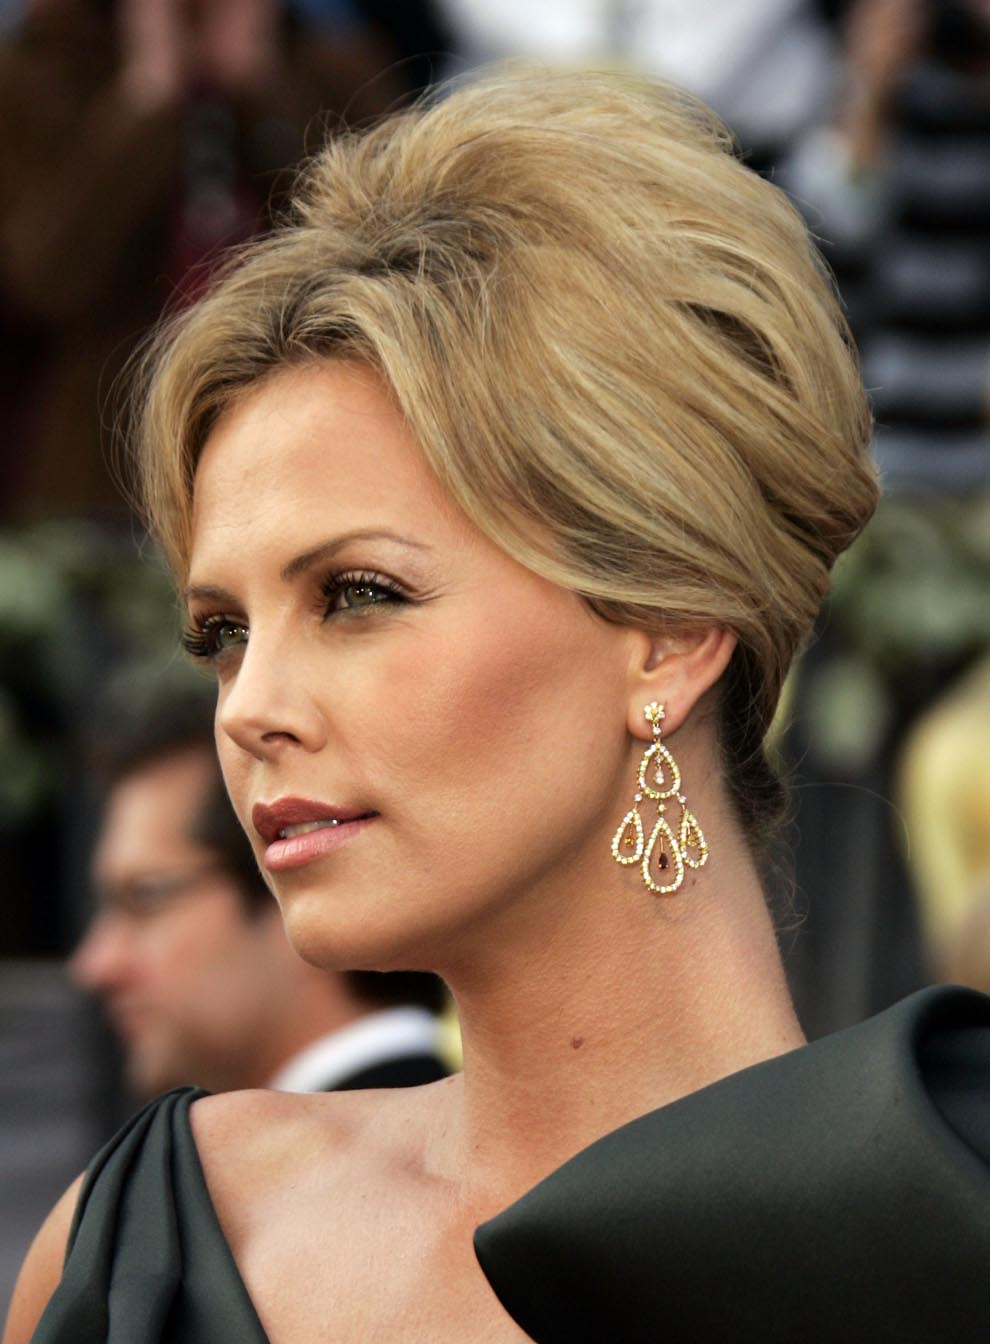 Hairstyle Movie : new life hartz: Charlize Theron Different Hairstyle